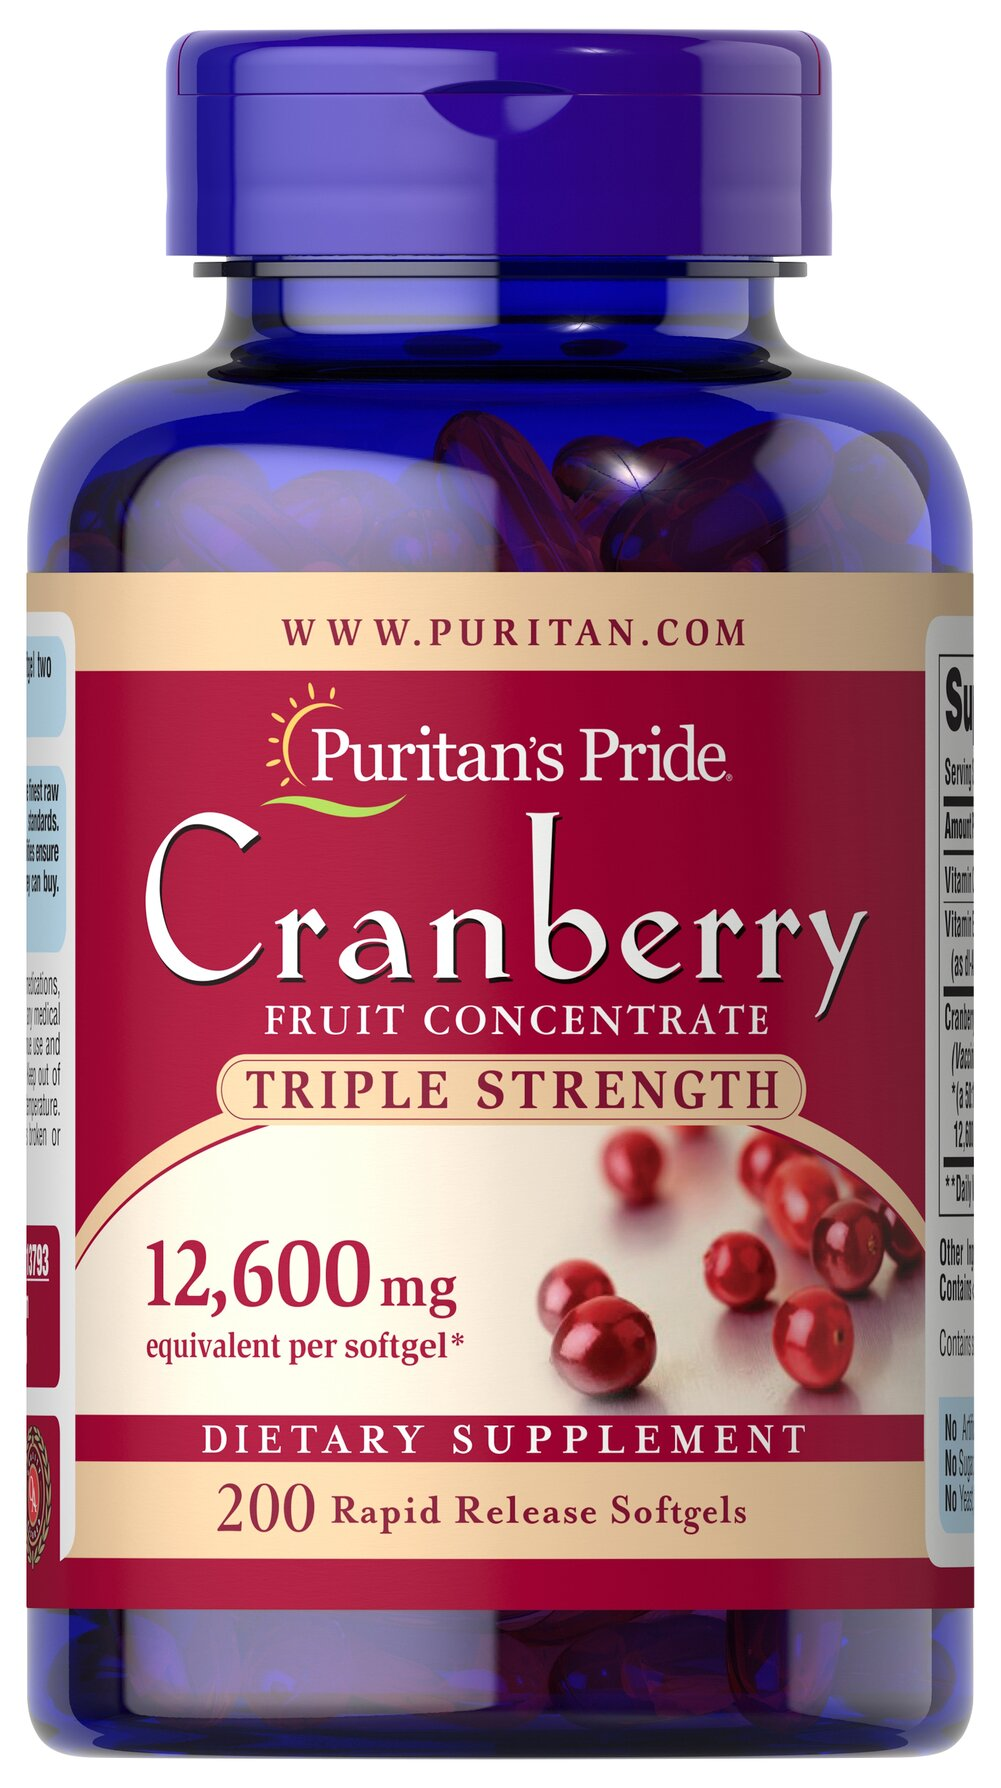 Triple Strength Cranberry Fruit Concentrate 12,600 mg  200 Softgels 12600 mg $31.99